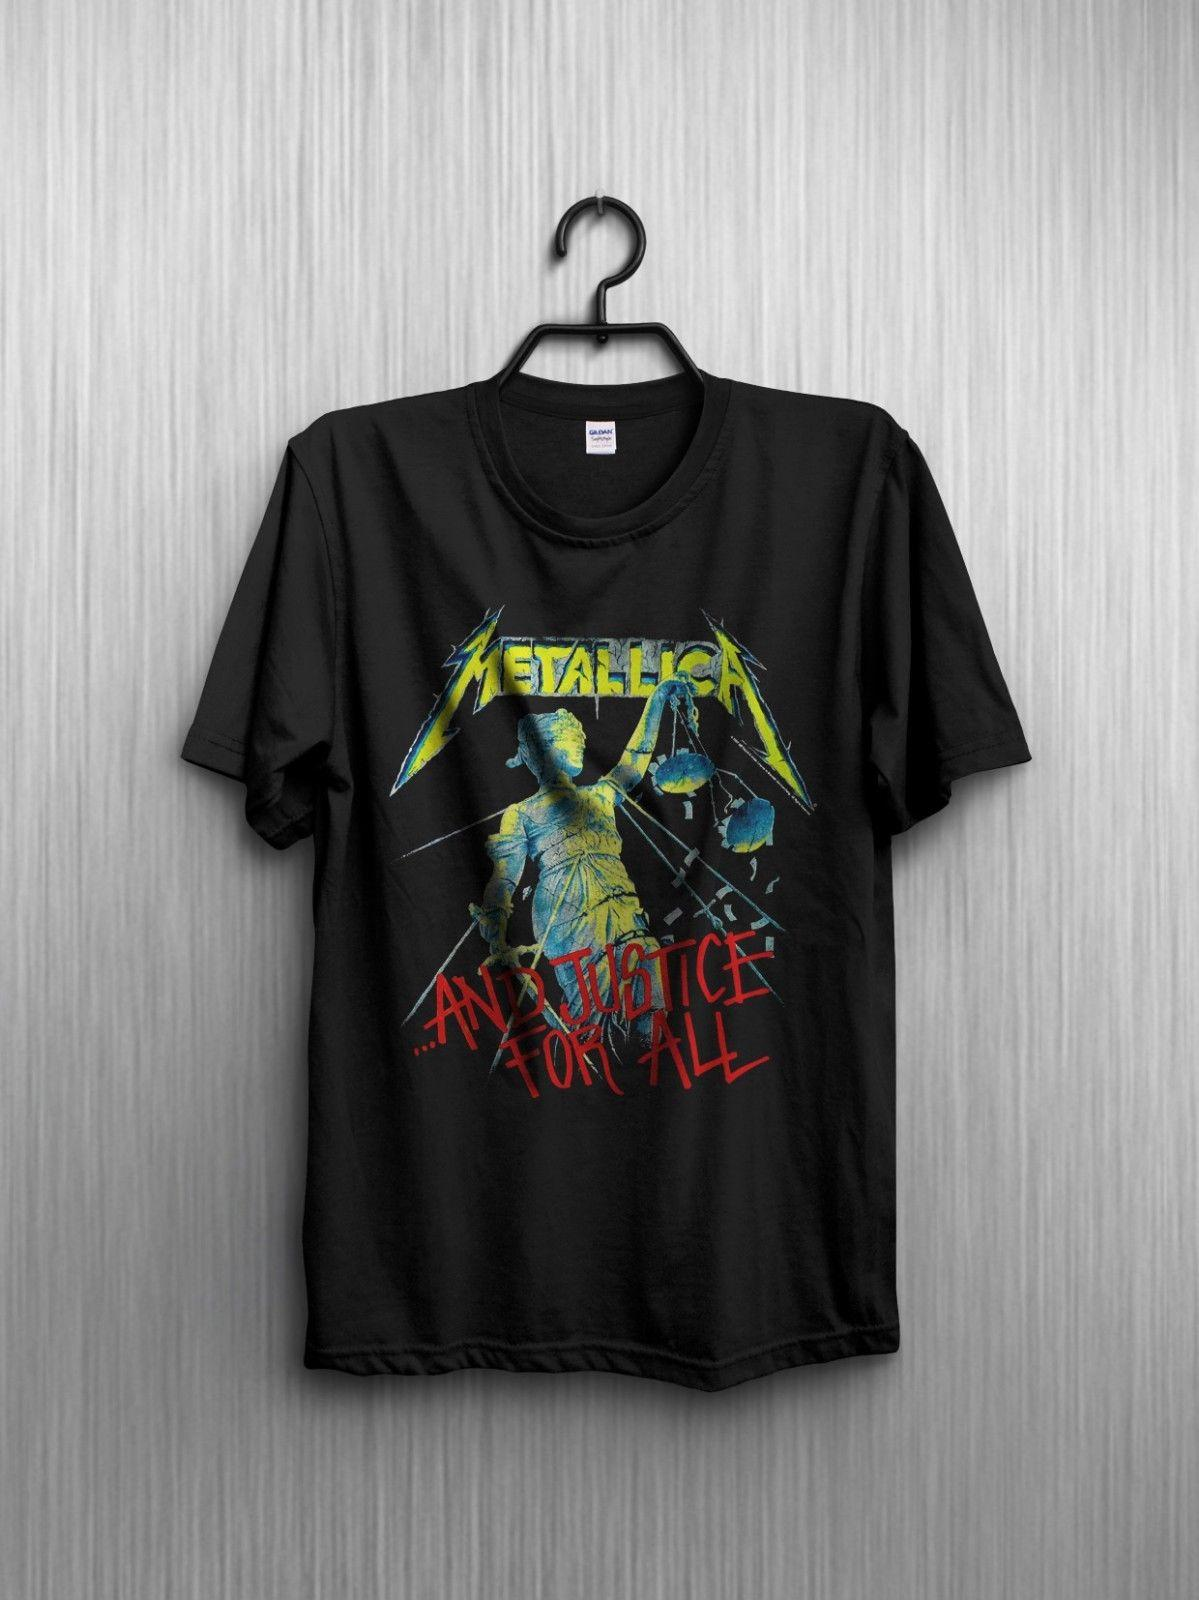 Vintage And T Tour Metallica All For Justice Reprint 1988 Shirt rZrHPwT7qa